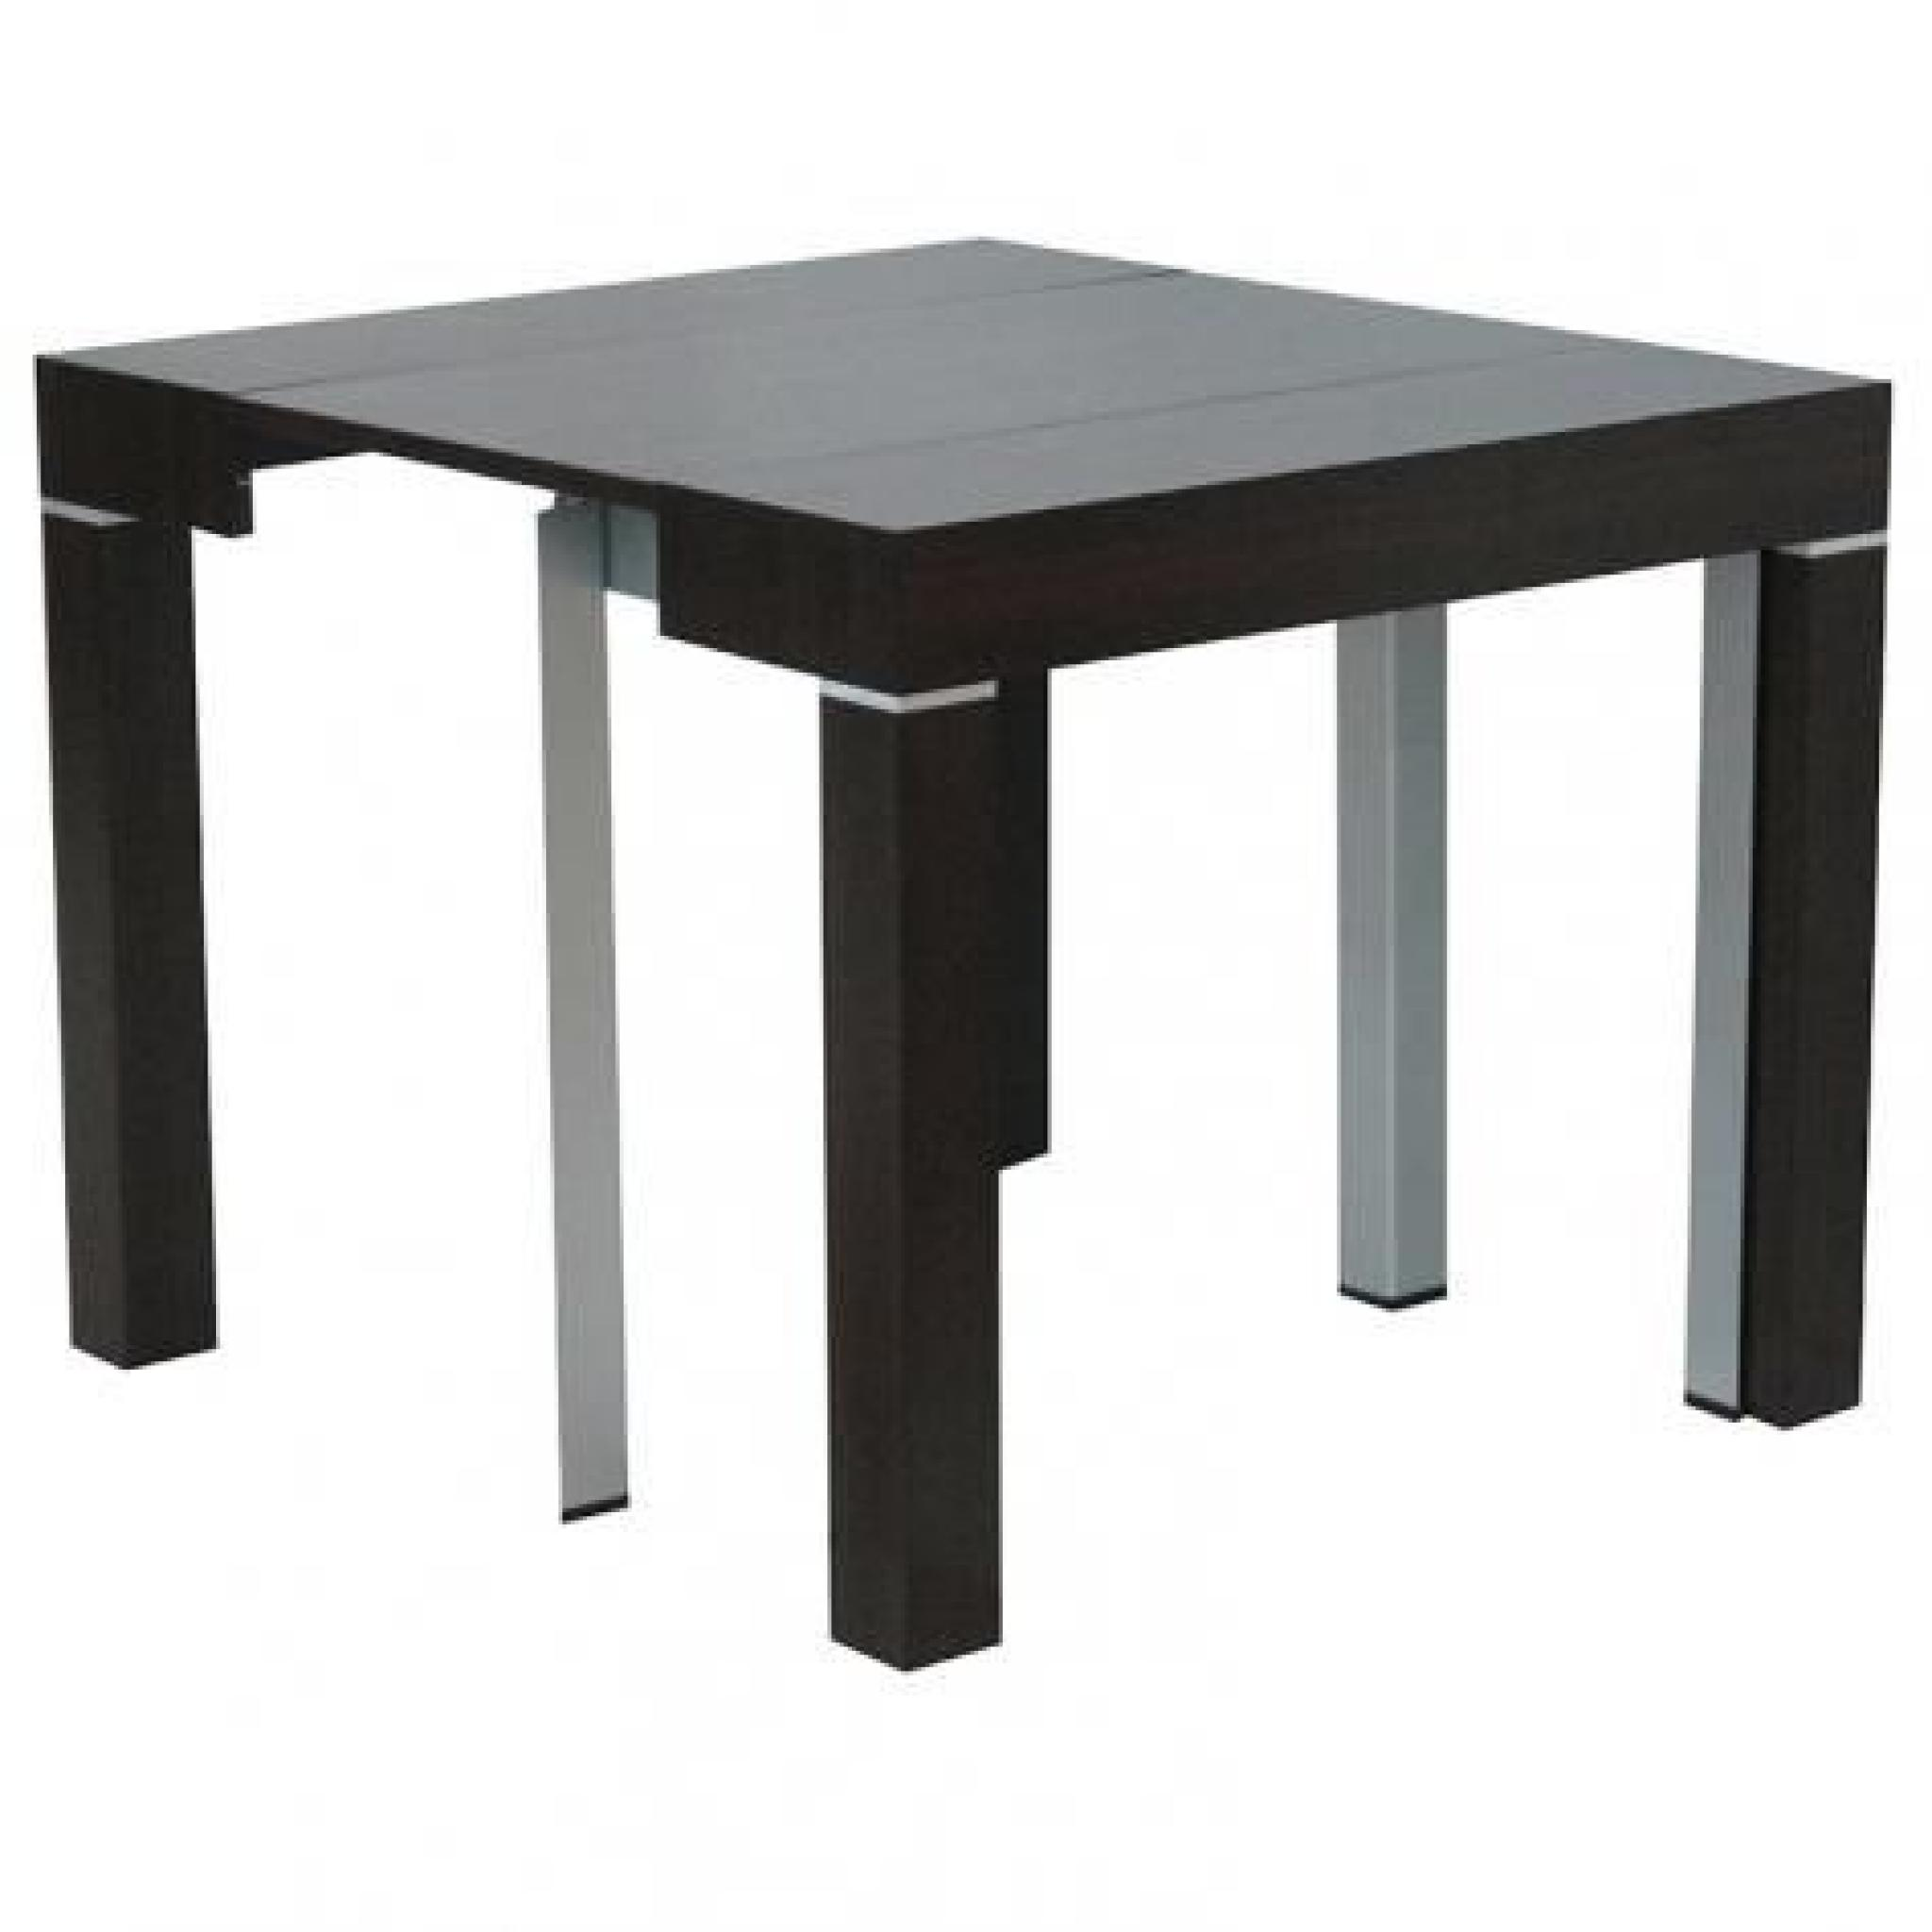 Table a rallonge pas cher conceptions de maison for Table noir rallonge